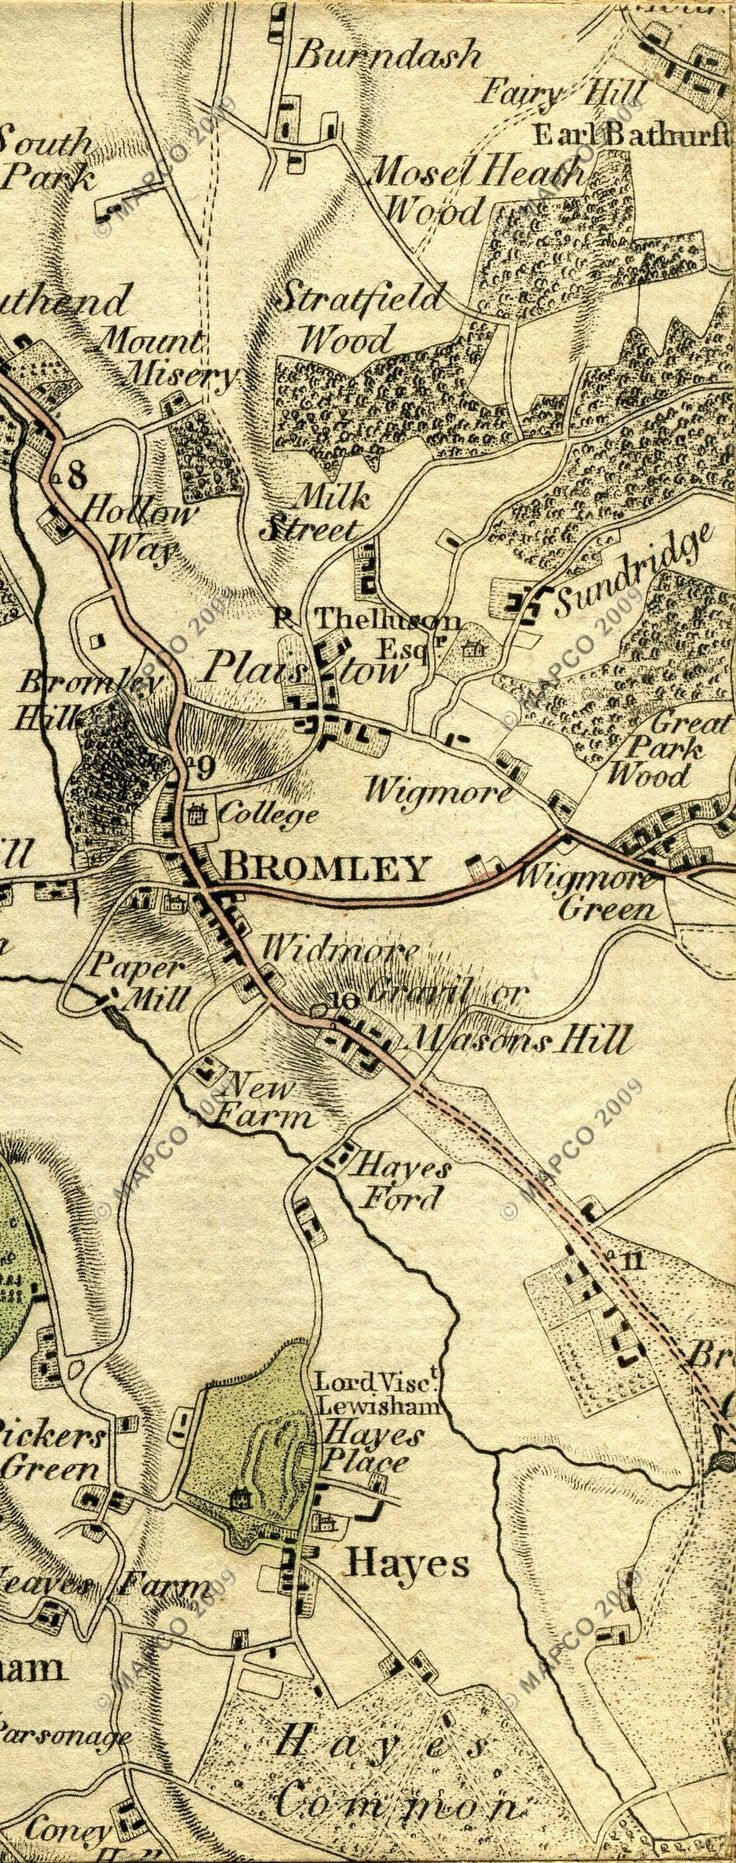 1789 map of Hayes, Kent. Pitt was born and grew up at Hayes Place.